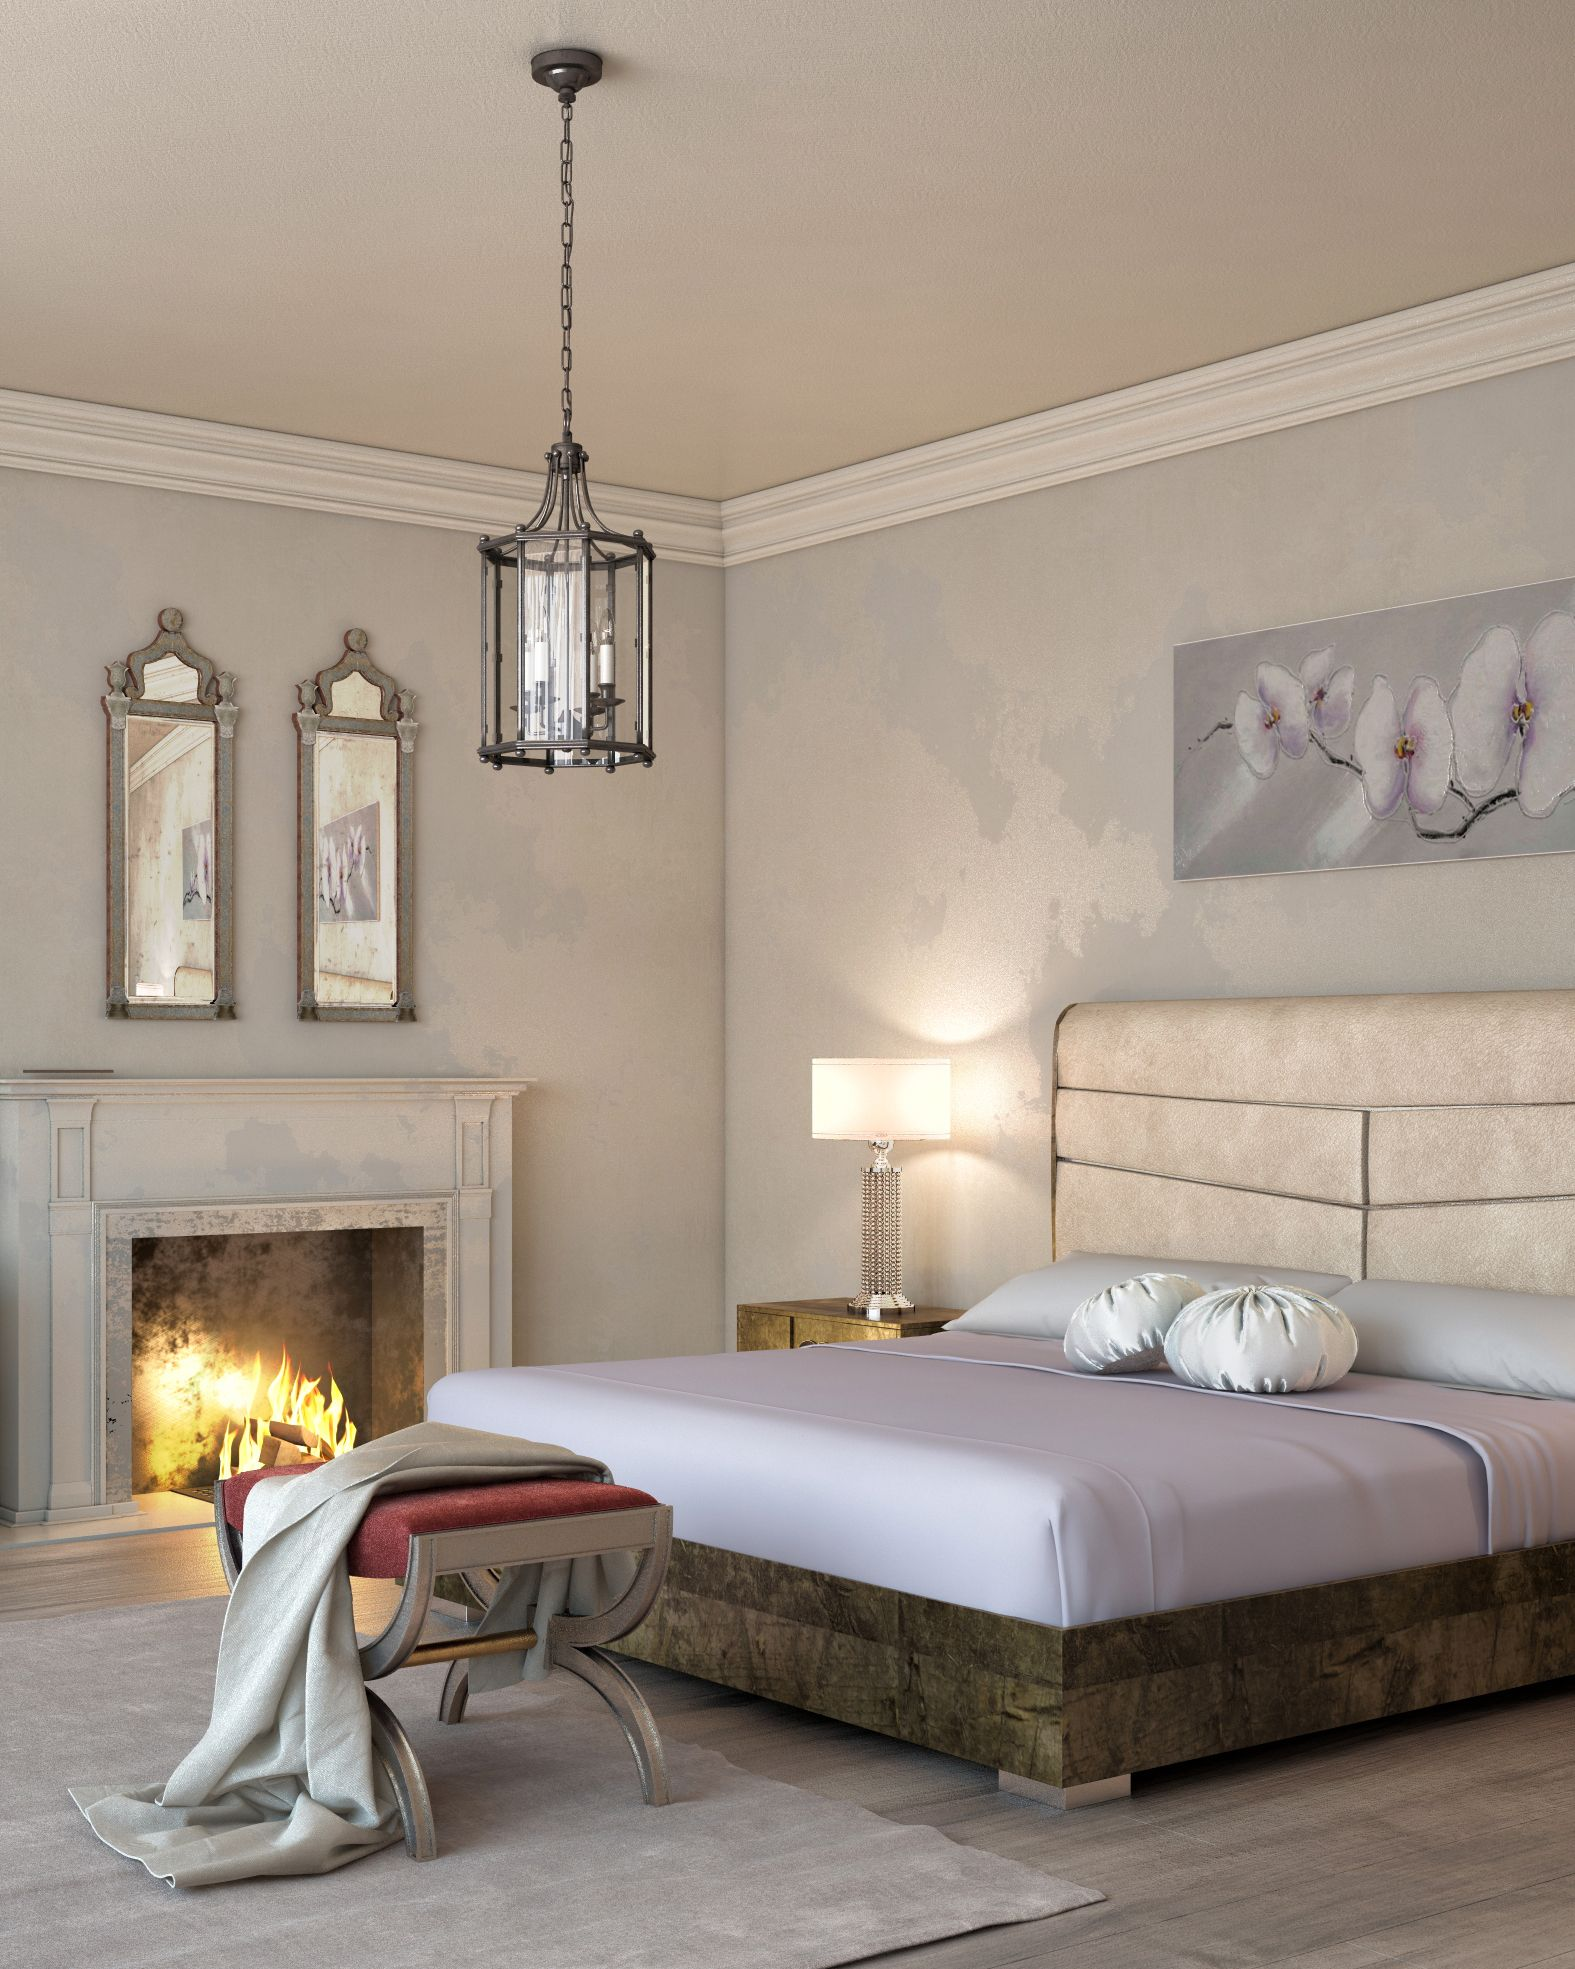 Shop this affordably luxurious Italian bed to set your